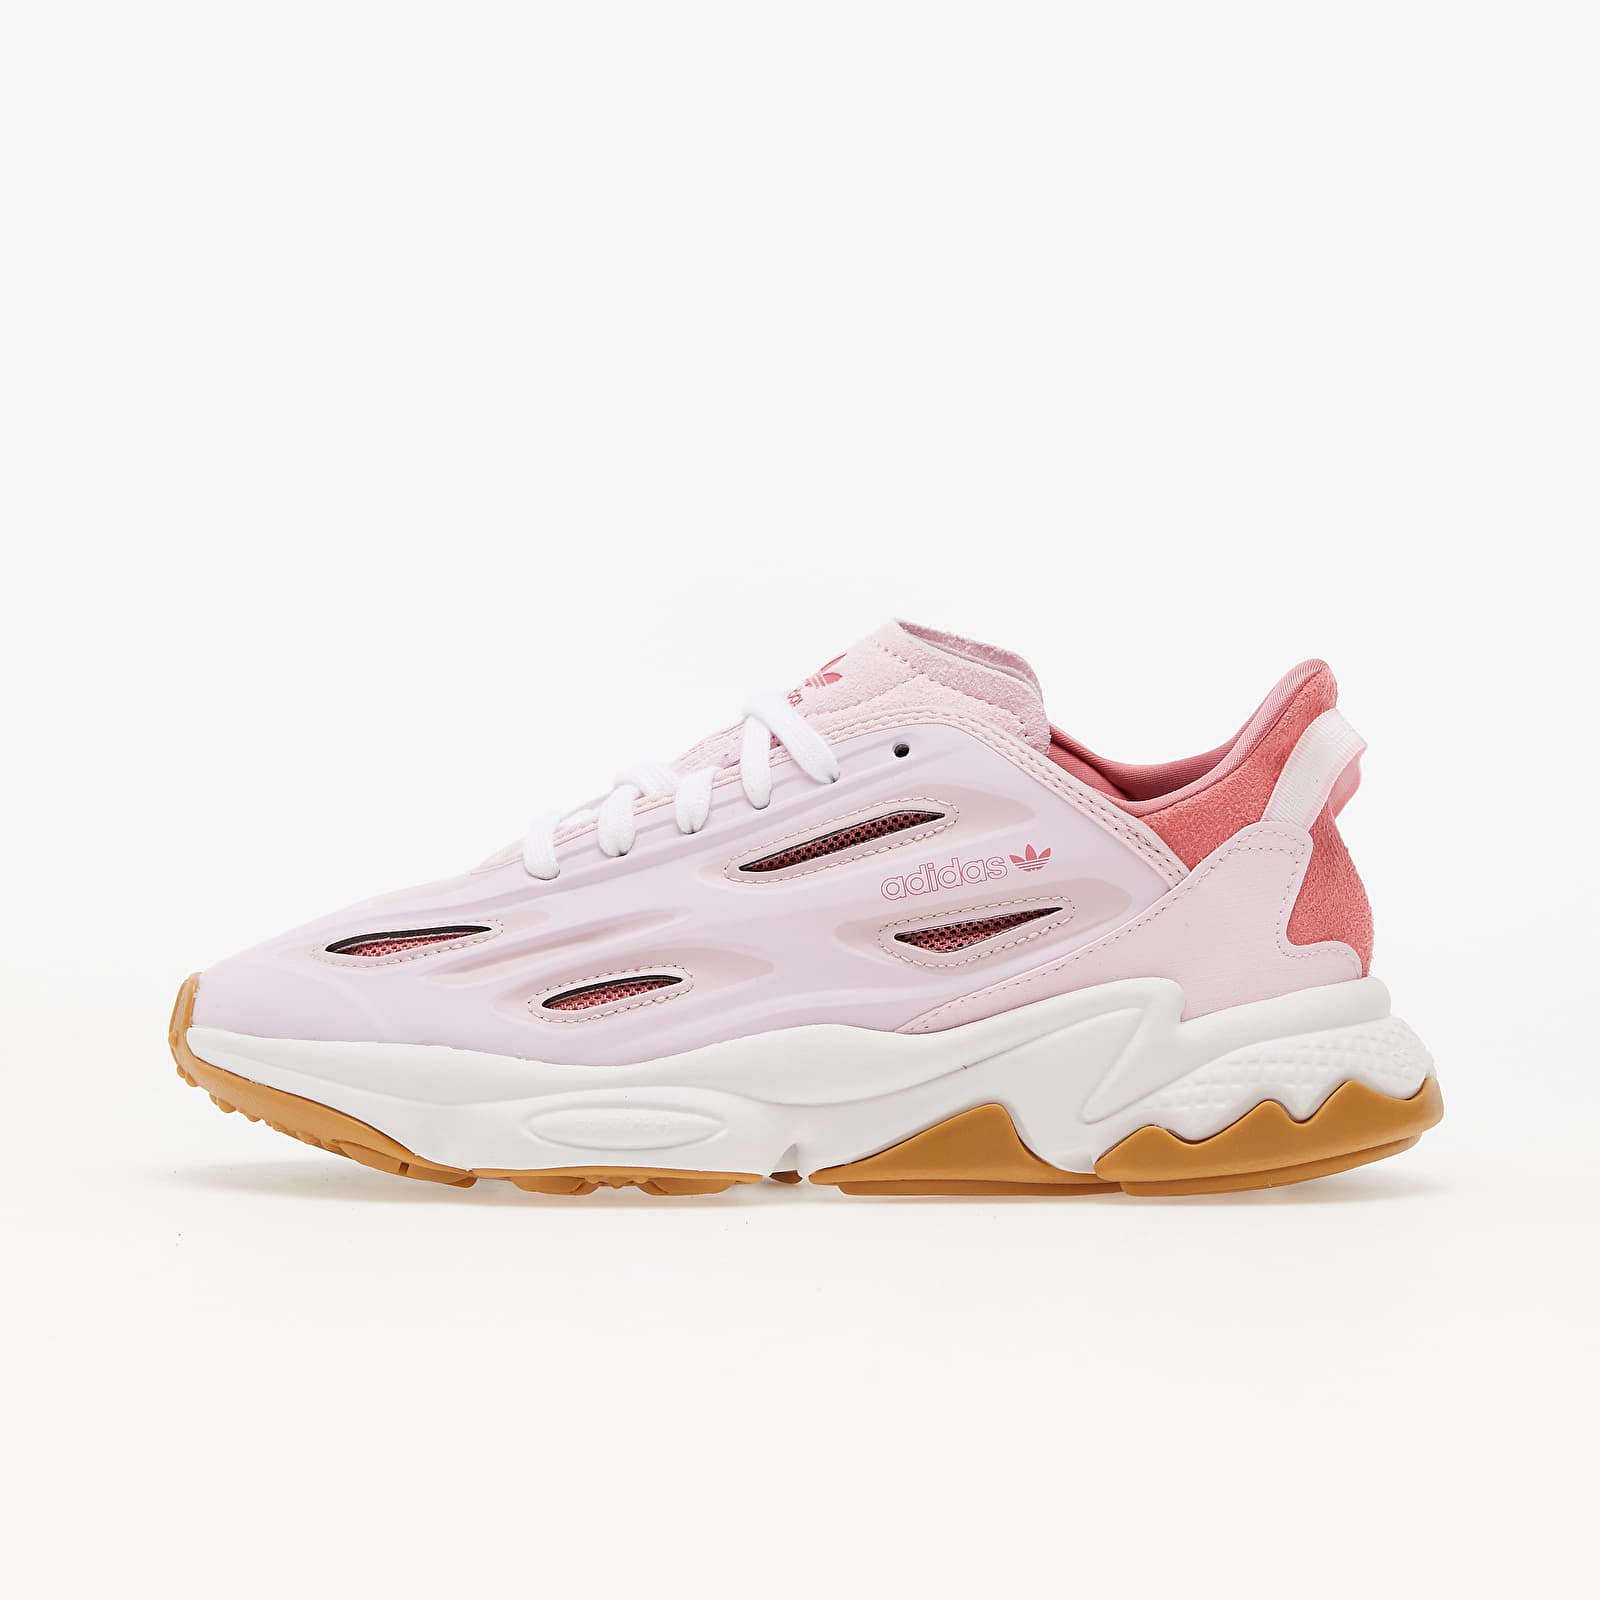 adidas Ozweego Celox W Clear Pink/ Clear Pink/ Ftw White EUR 37 1/3